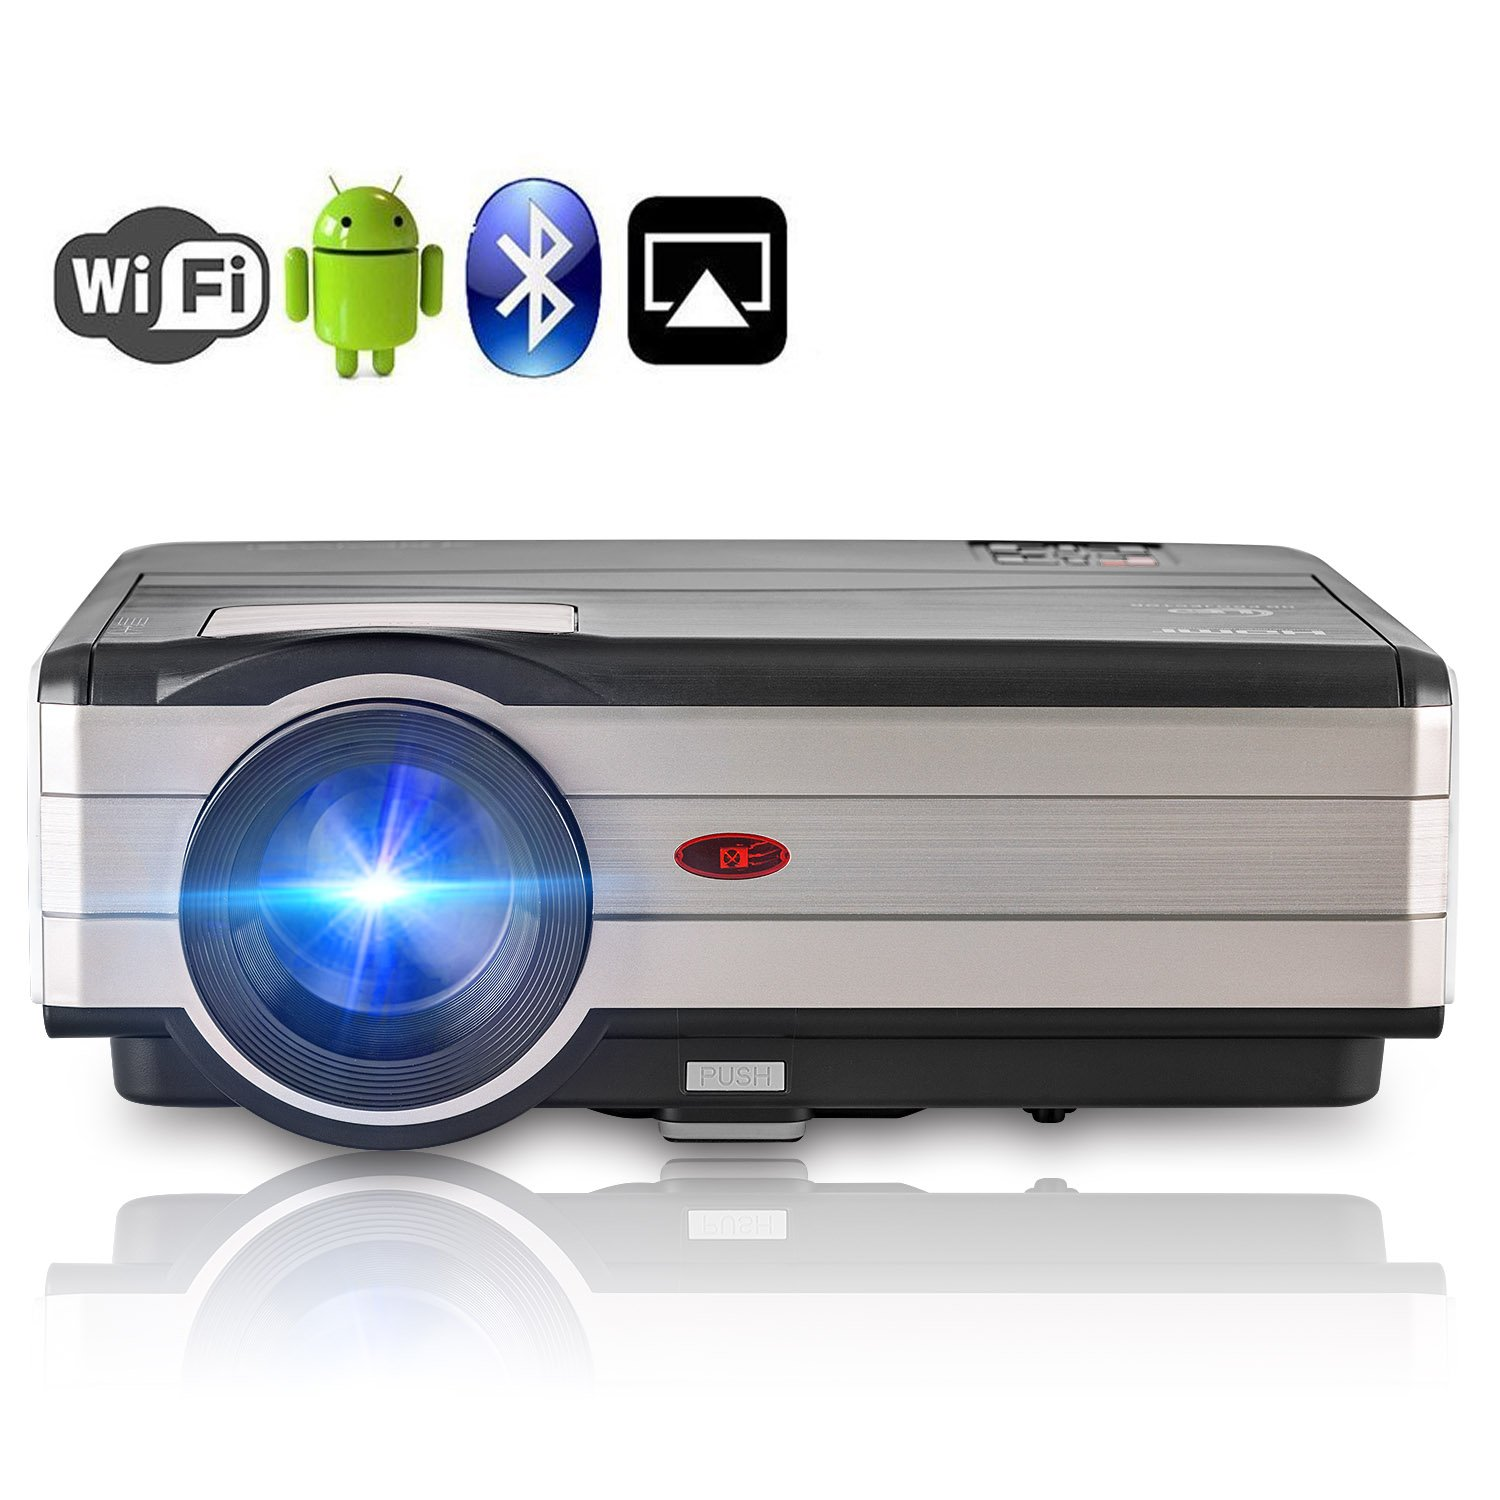 Android Projector WiFi Bluetooth Support Full HD 1080P, 3500 Lumen Home Theater Projector HDMI TV AV USB Audio Port for iPhone Smartphone, Video Projector for Indoor Outdoor Basement Backyard